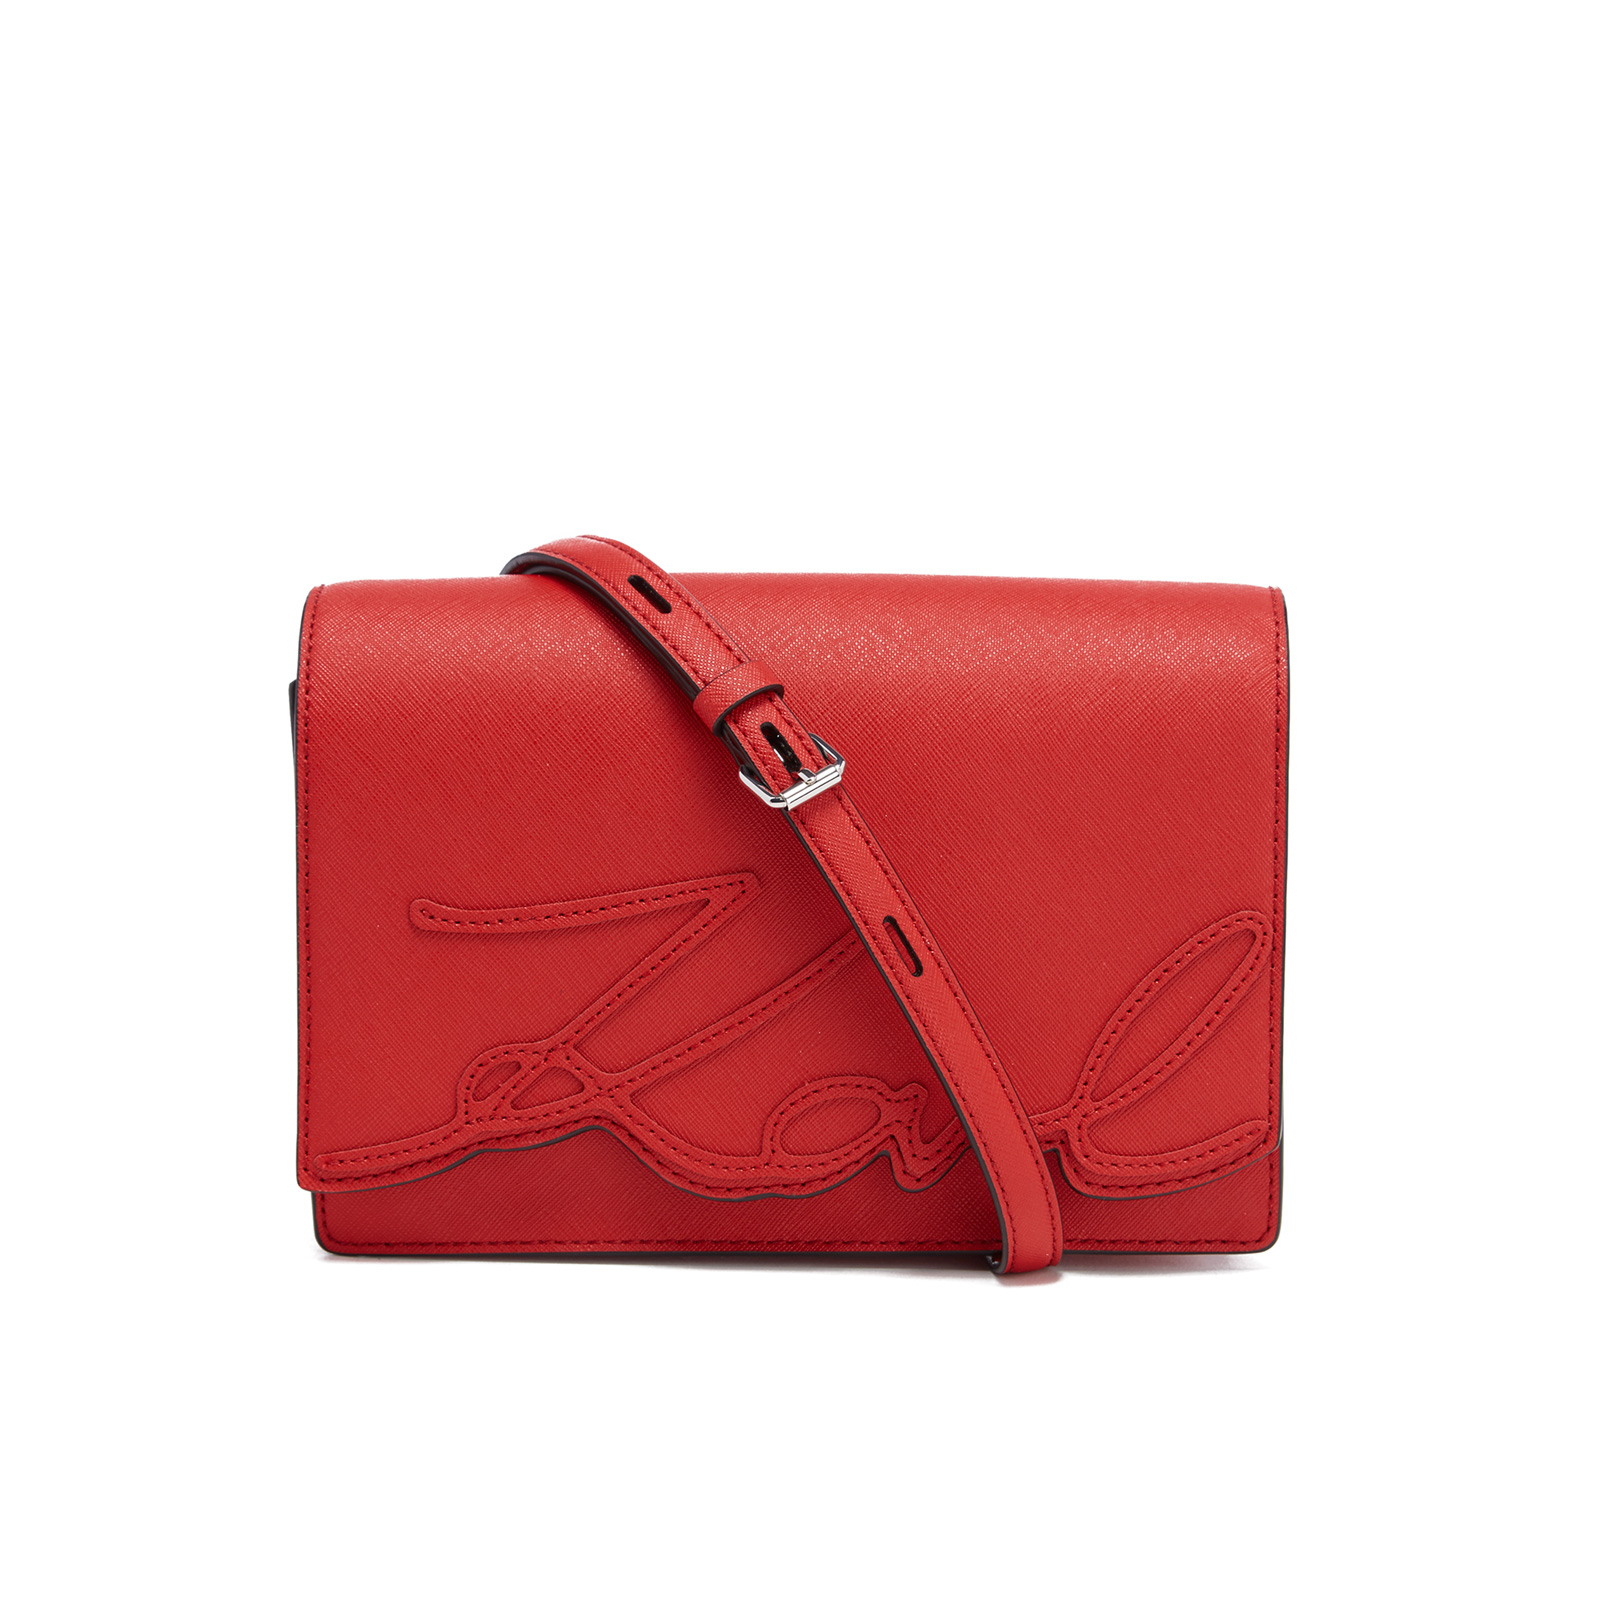 e2f2dd1bc0f4 Karl Lagerfeld Women s K Signature Shoulder Bag - Scarlet - Free UK  Delivery over £50